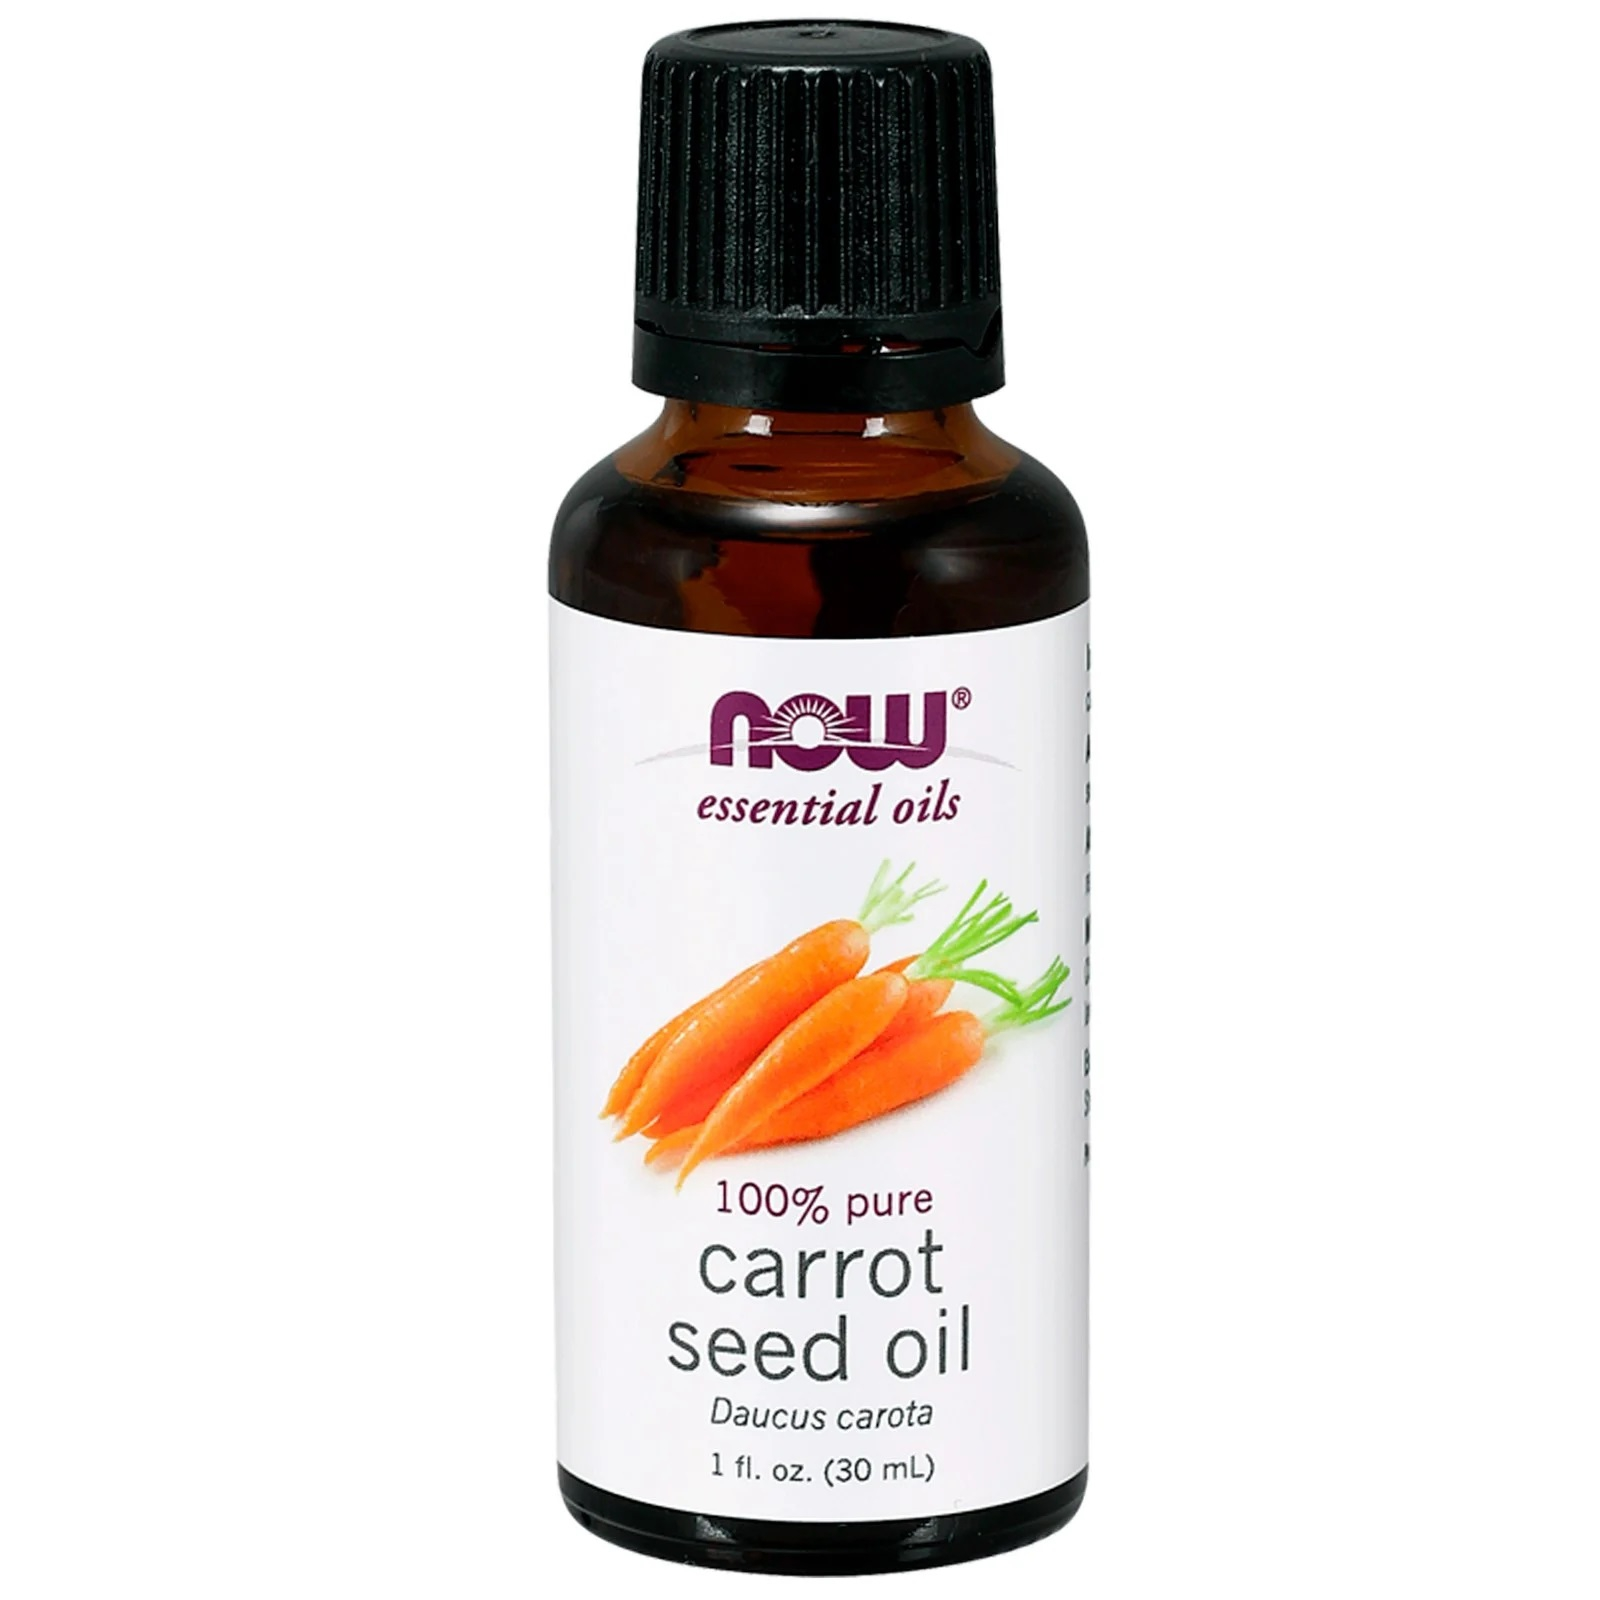 Image of Essential Oils- Carrot Seed Oil (30 ml) - Now Foods 0733739074829